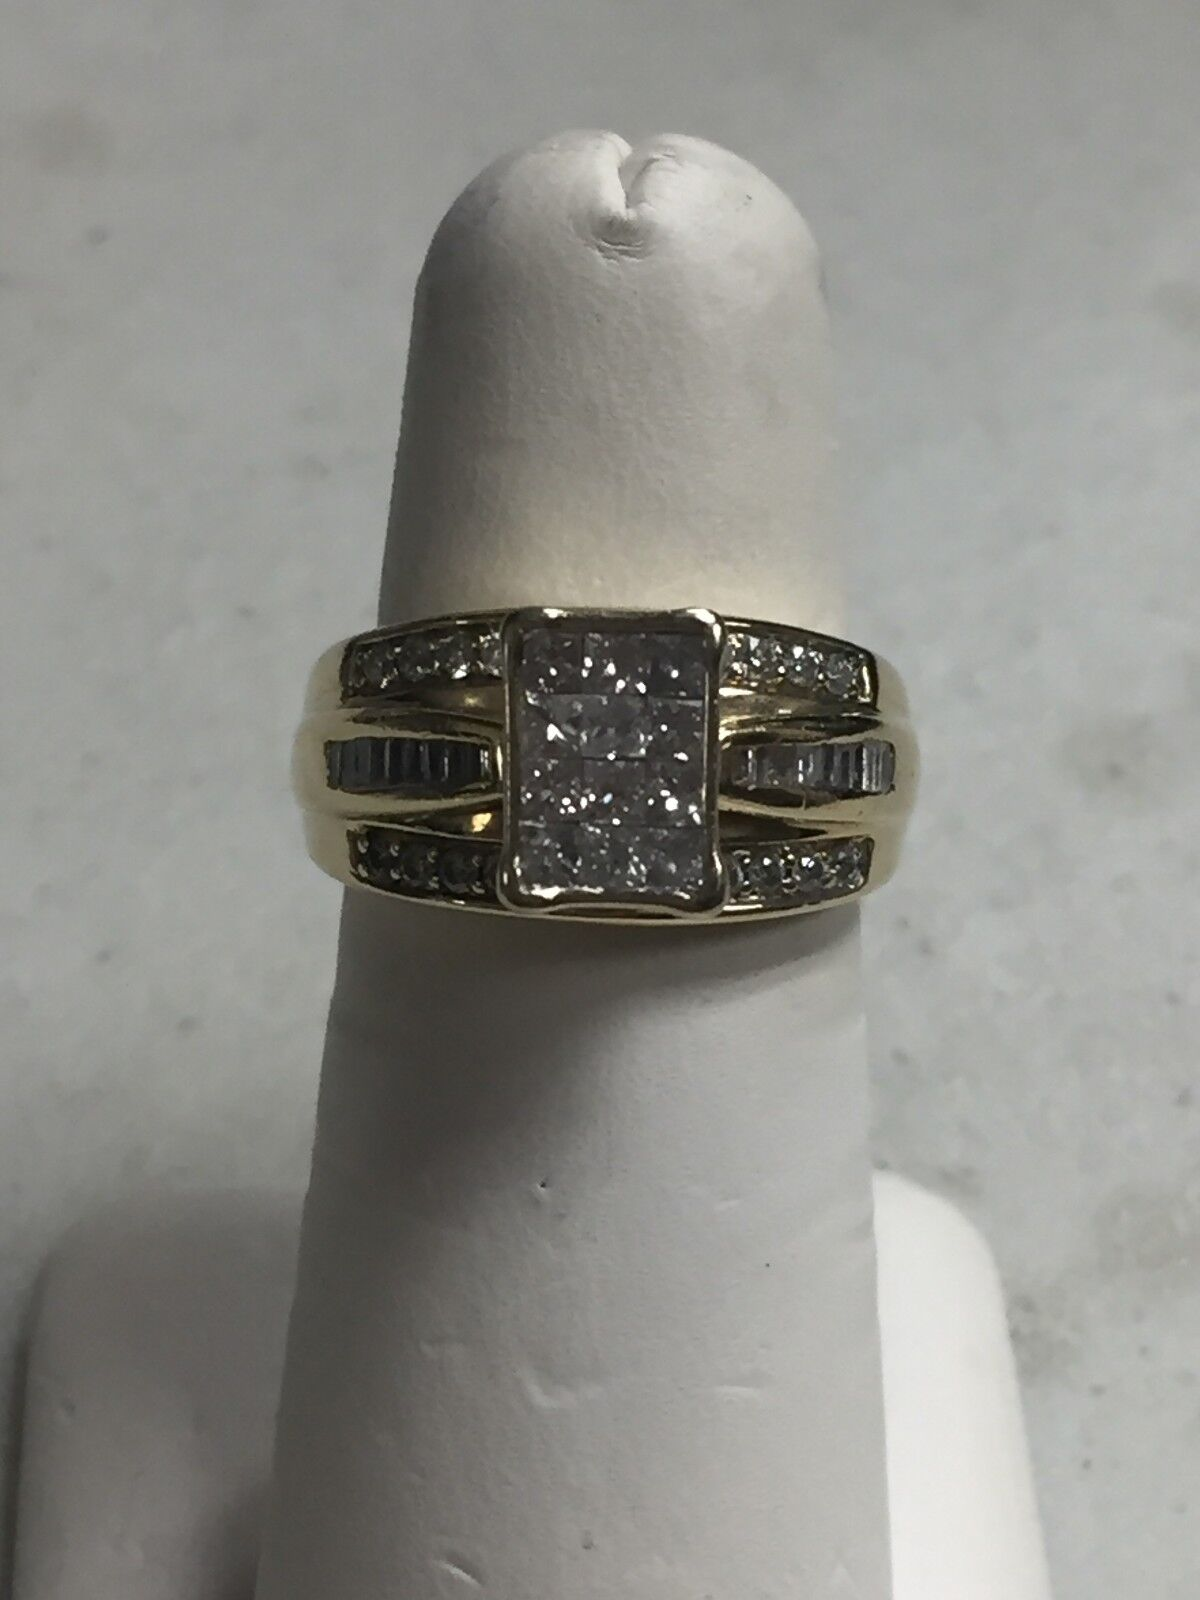 ZEI 14k YELLOW gold 1.14 TCW PRINCESS CUT DIAMOND ILLUSION RING